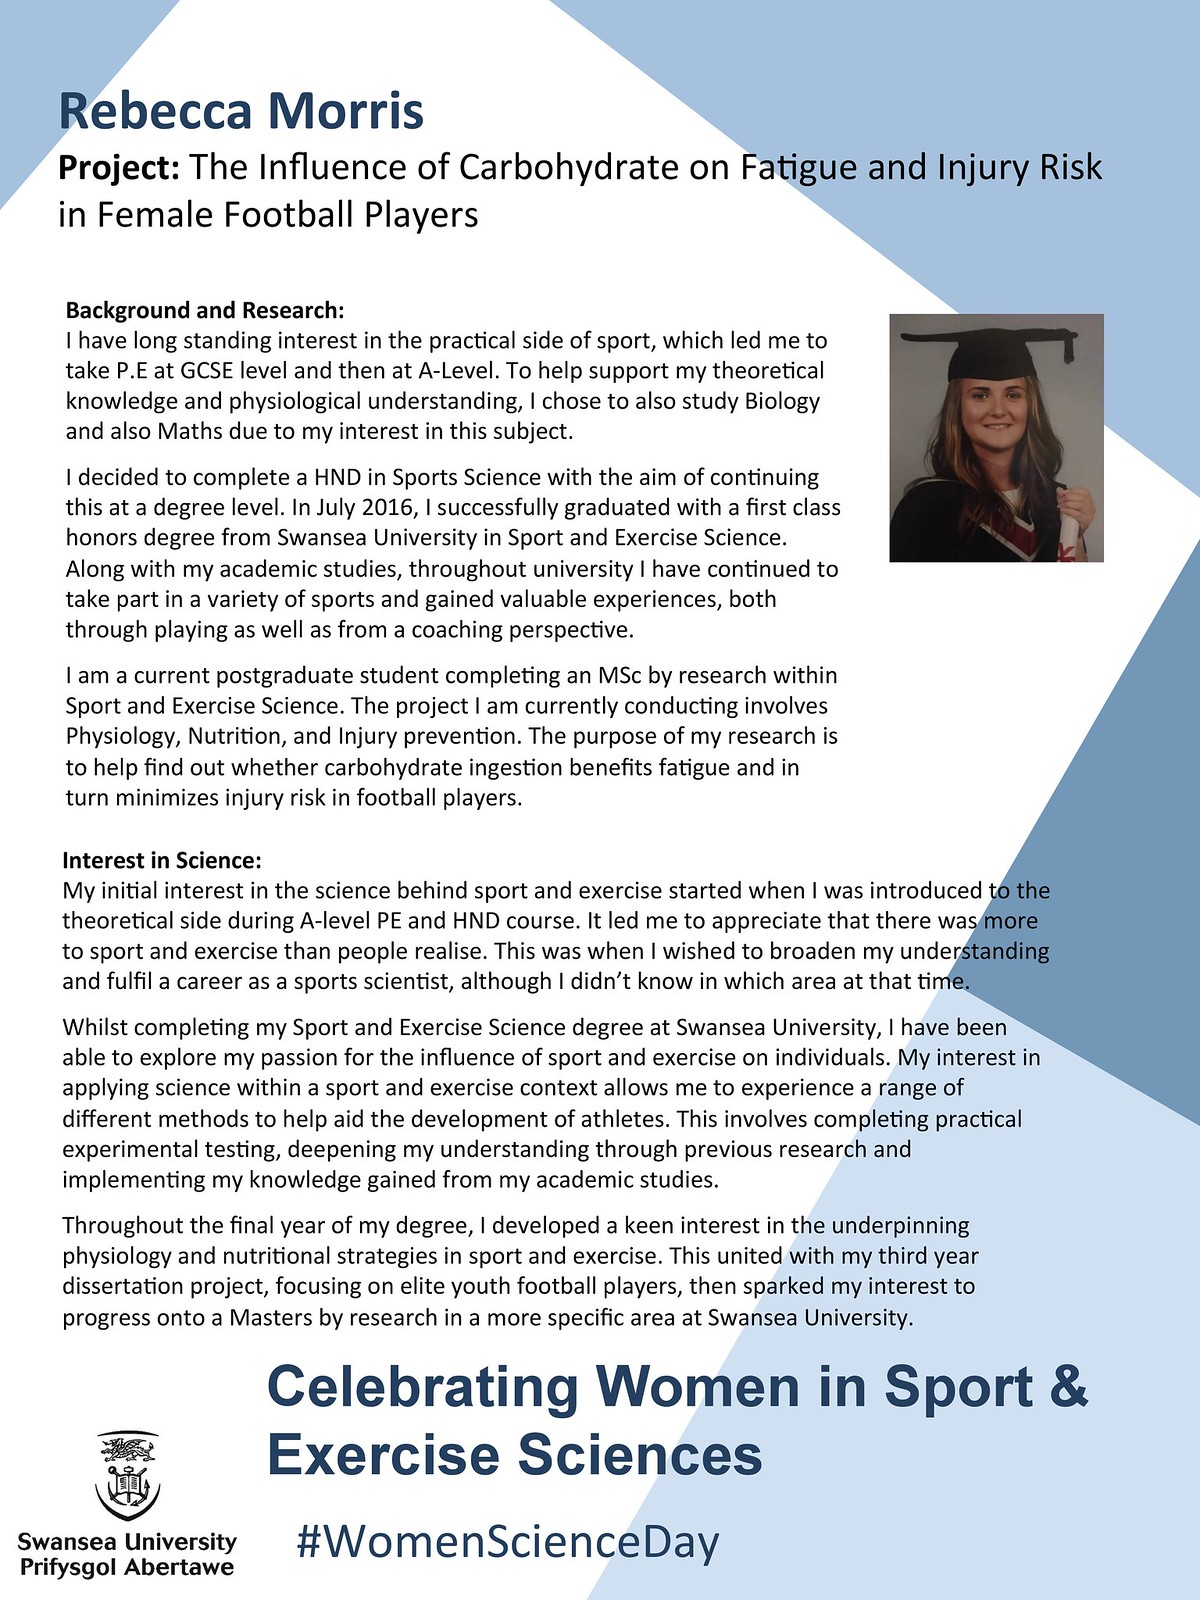 Women in Sport & Exercise Sciences